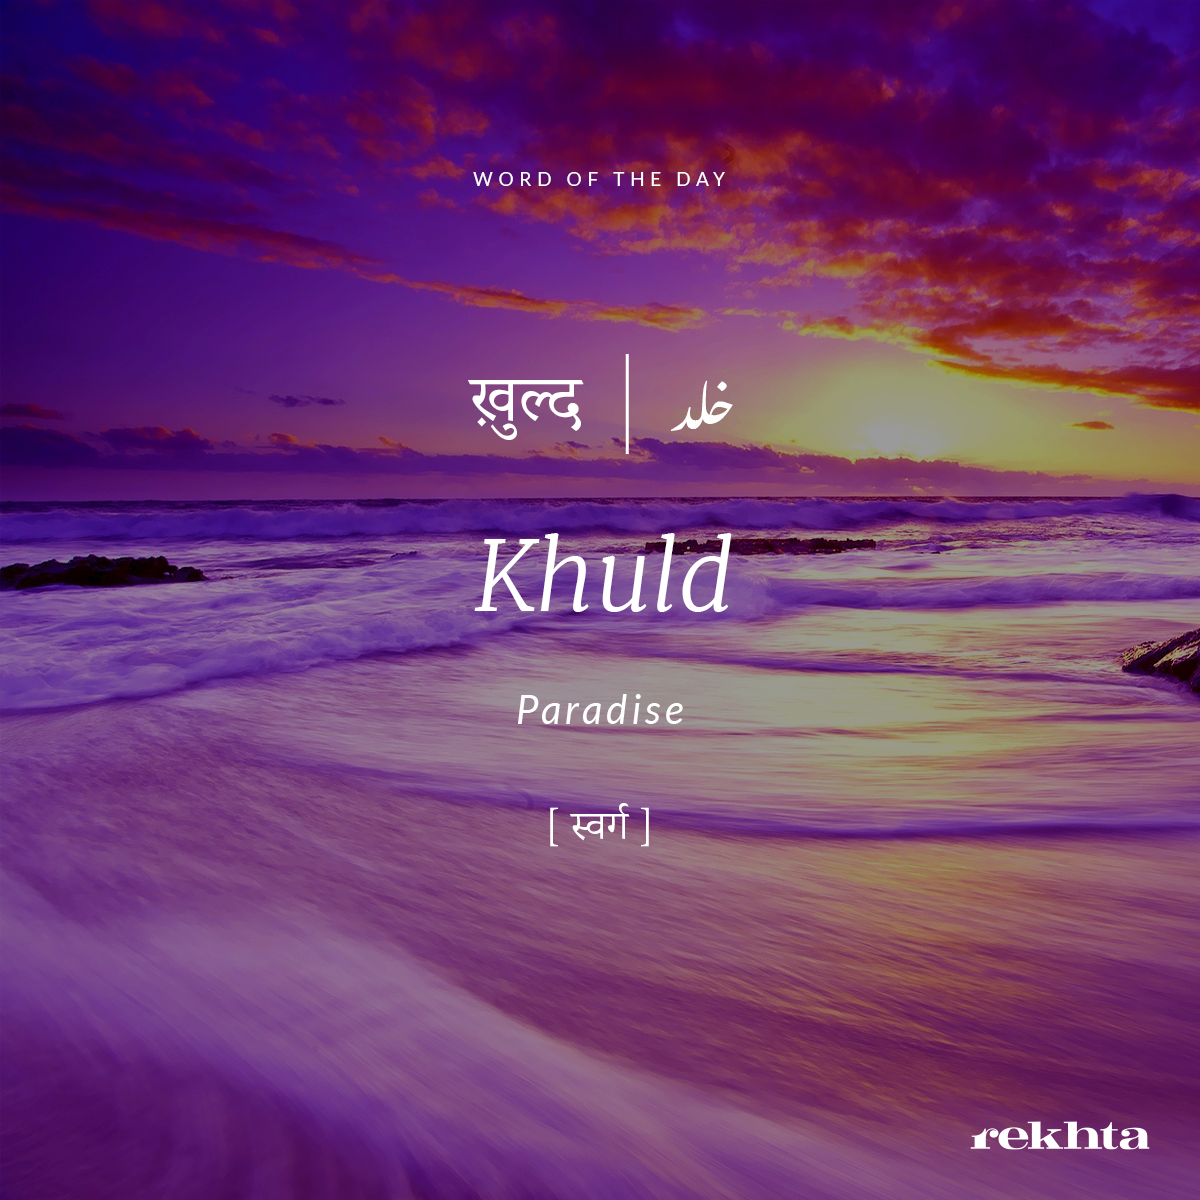 Word of the day Urdu words with meaning, Hindi words